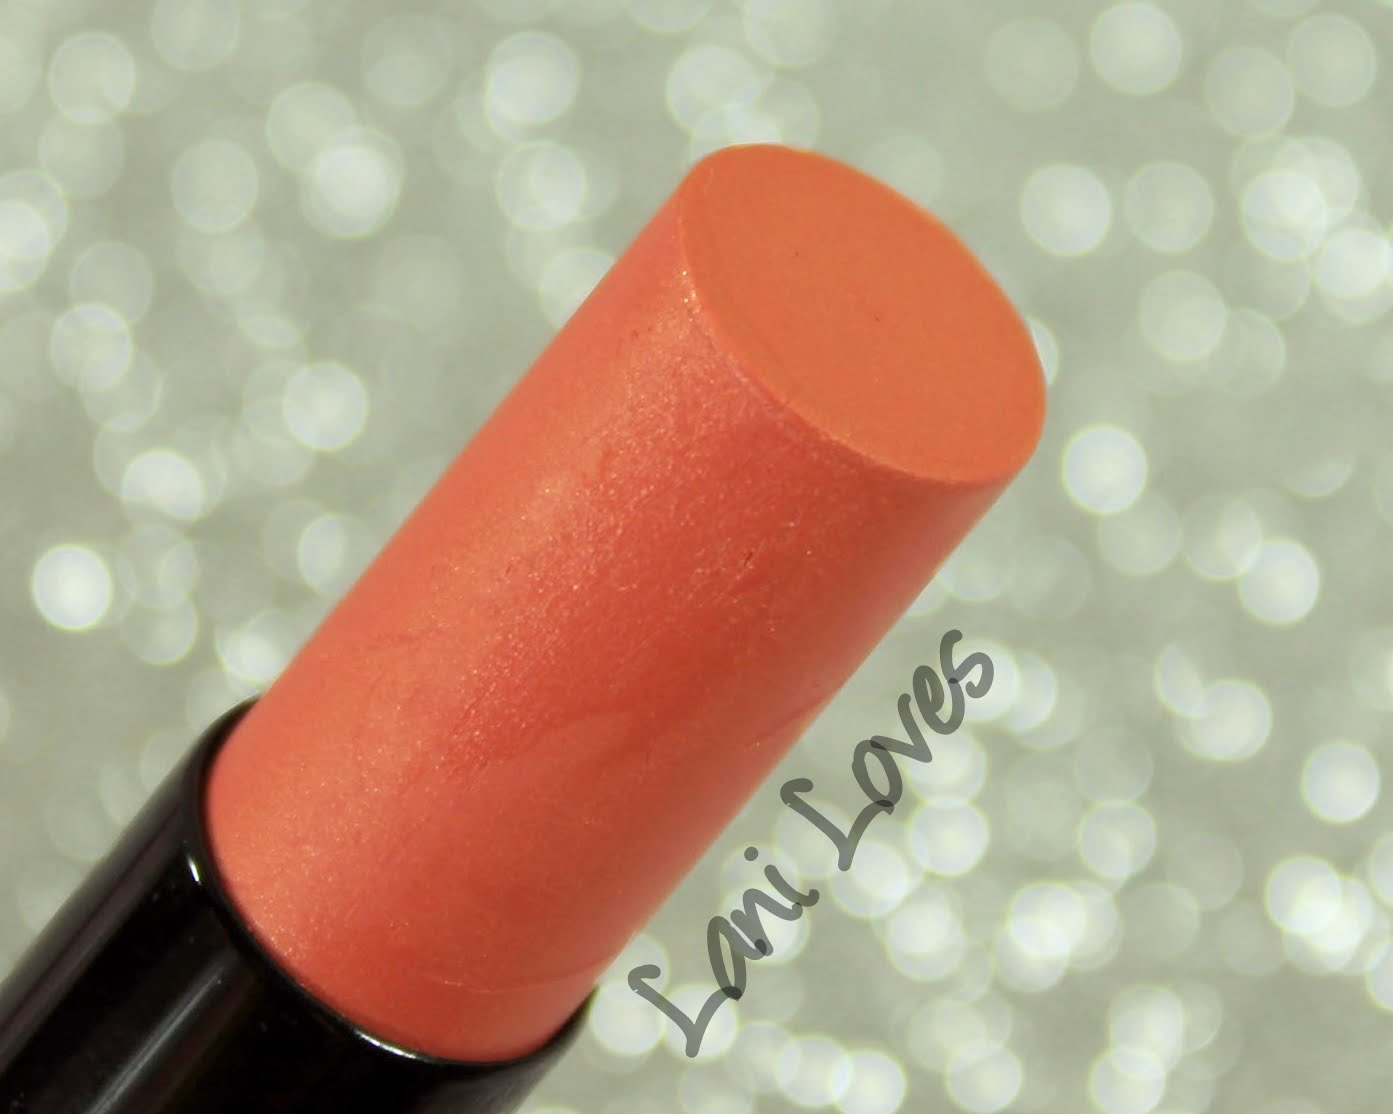 ZA Vibrant Moist Lipstick - PK212s swatches & review